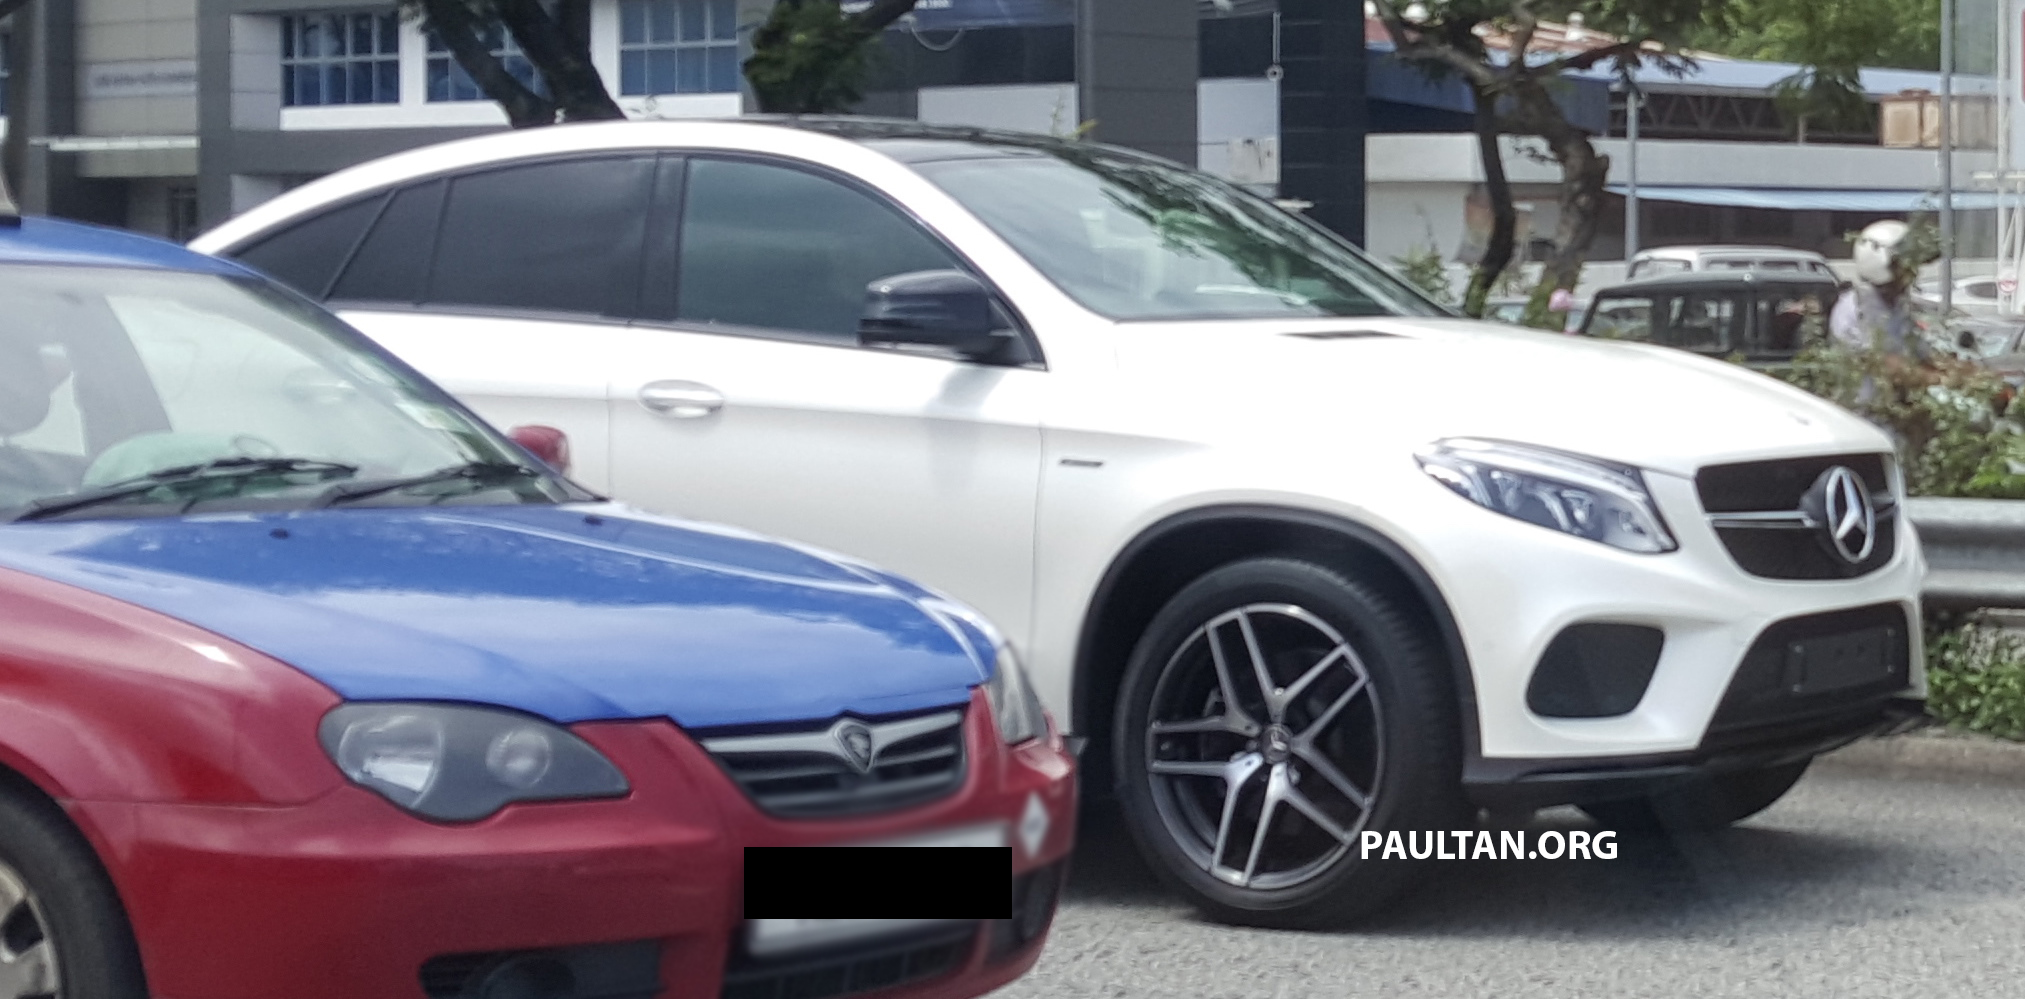 2018 Mercedes Gle Top Upcoming Cars 2020 Force 40 Hp Mercury Tachometer Wiring Diagram Spied Benz 450 Amg On Fed Hwy